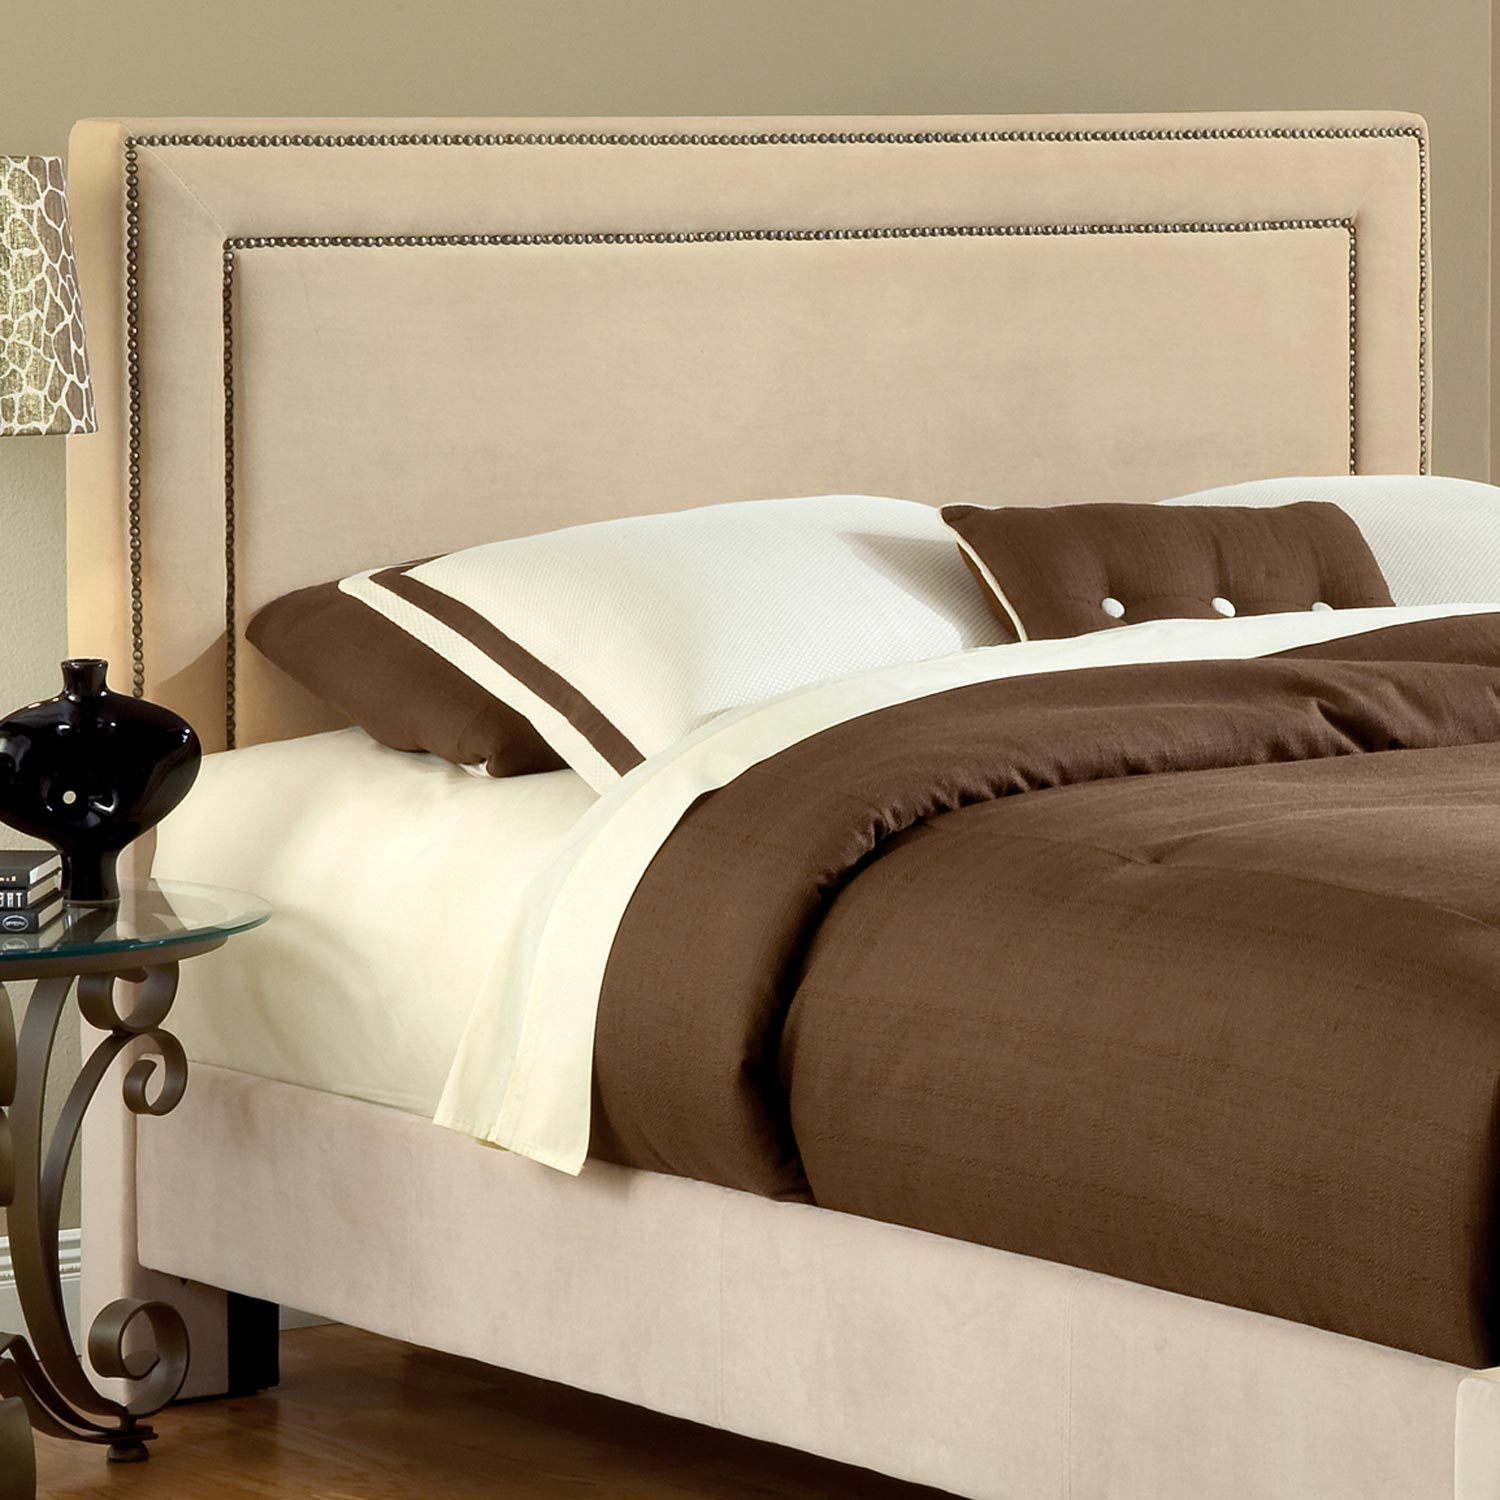 Amber Fabric Headboard - Buckwheat, Nailhead Trim